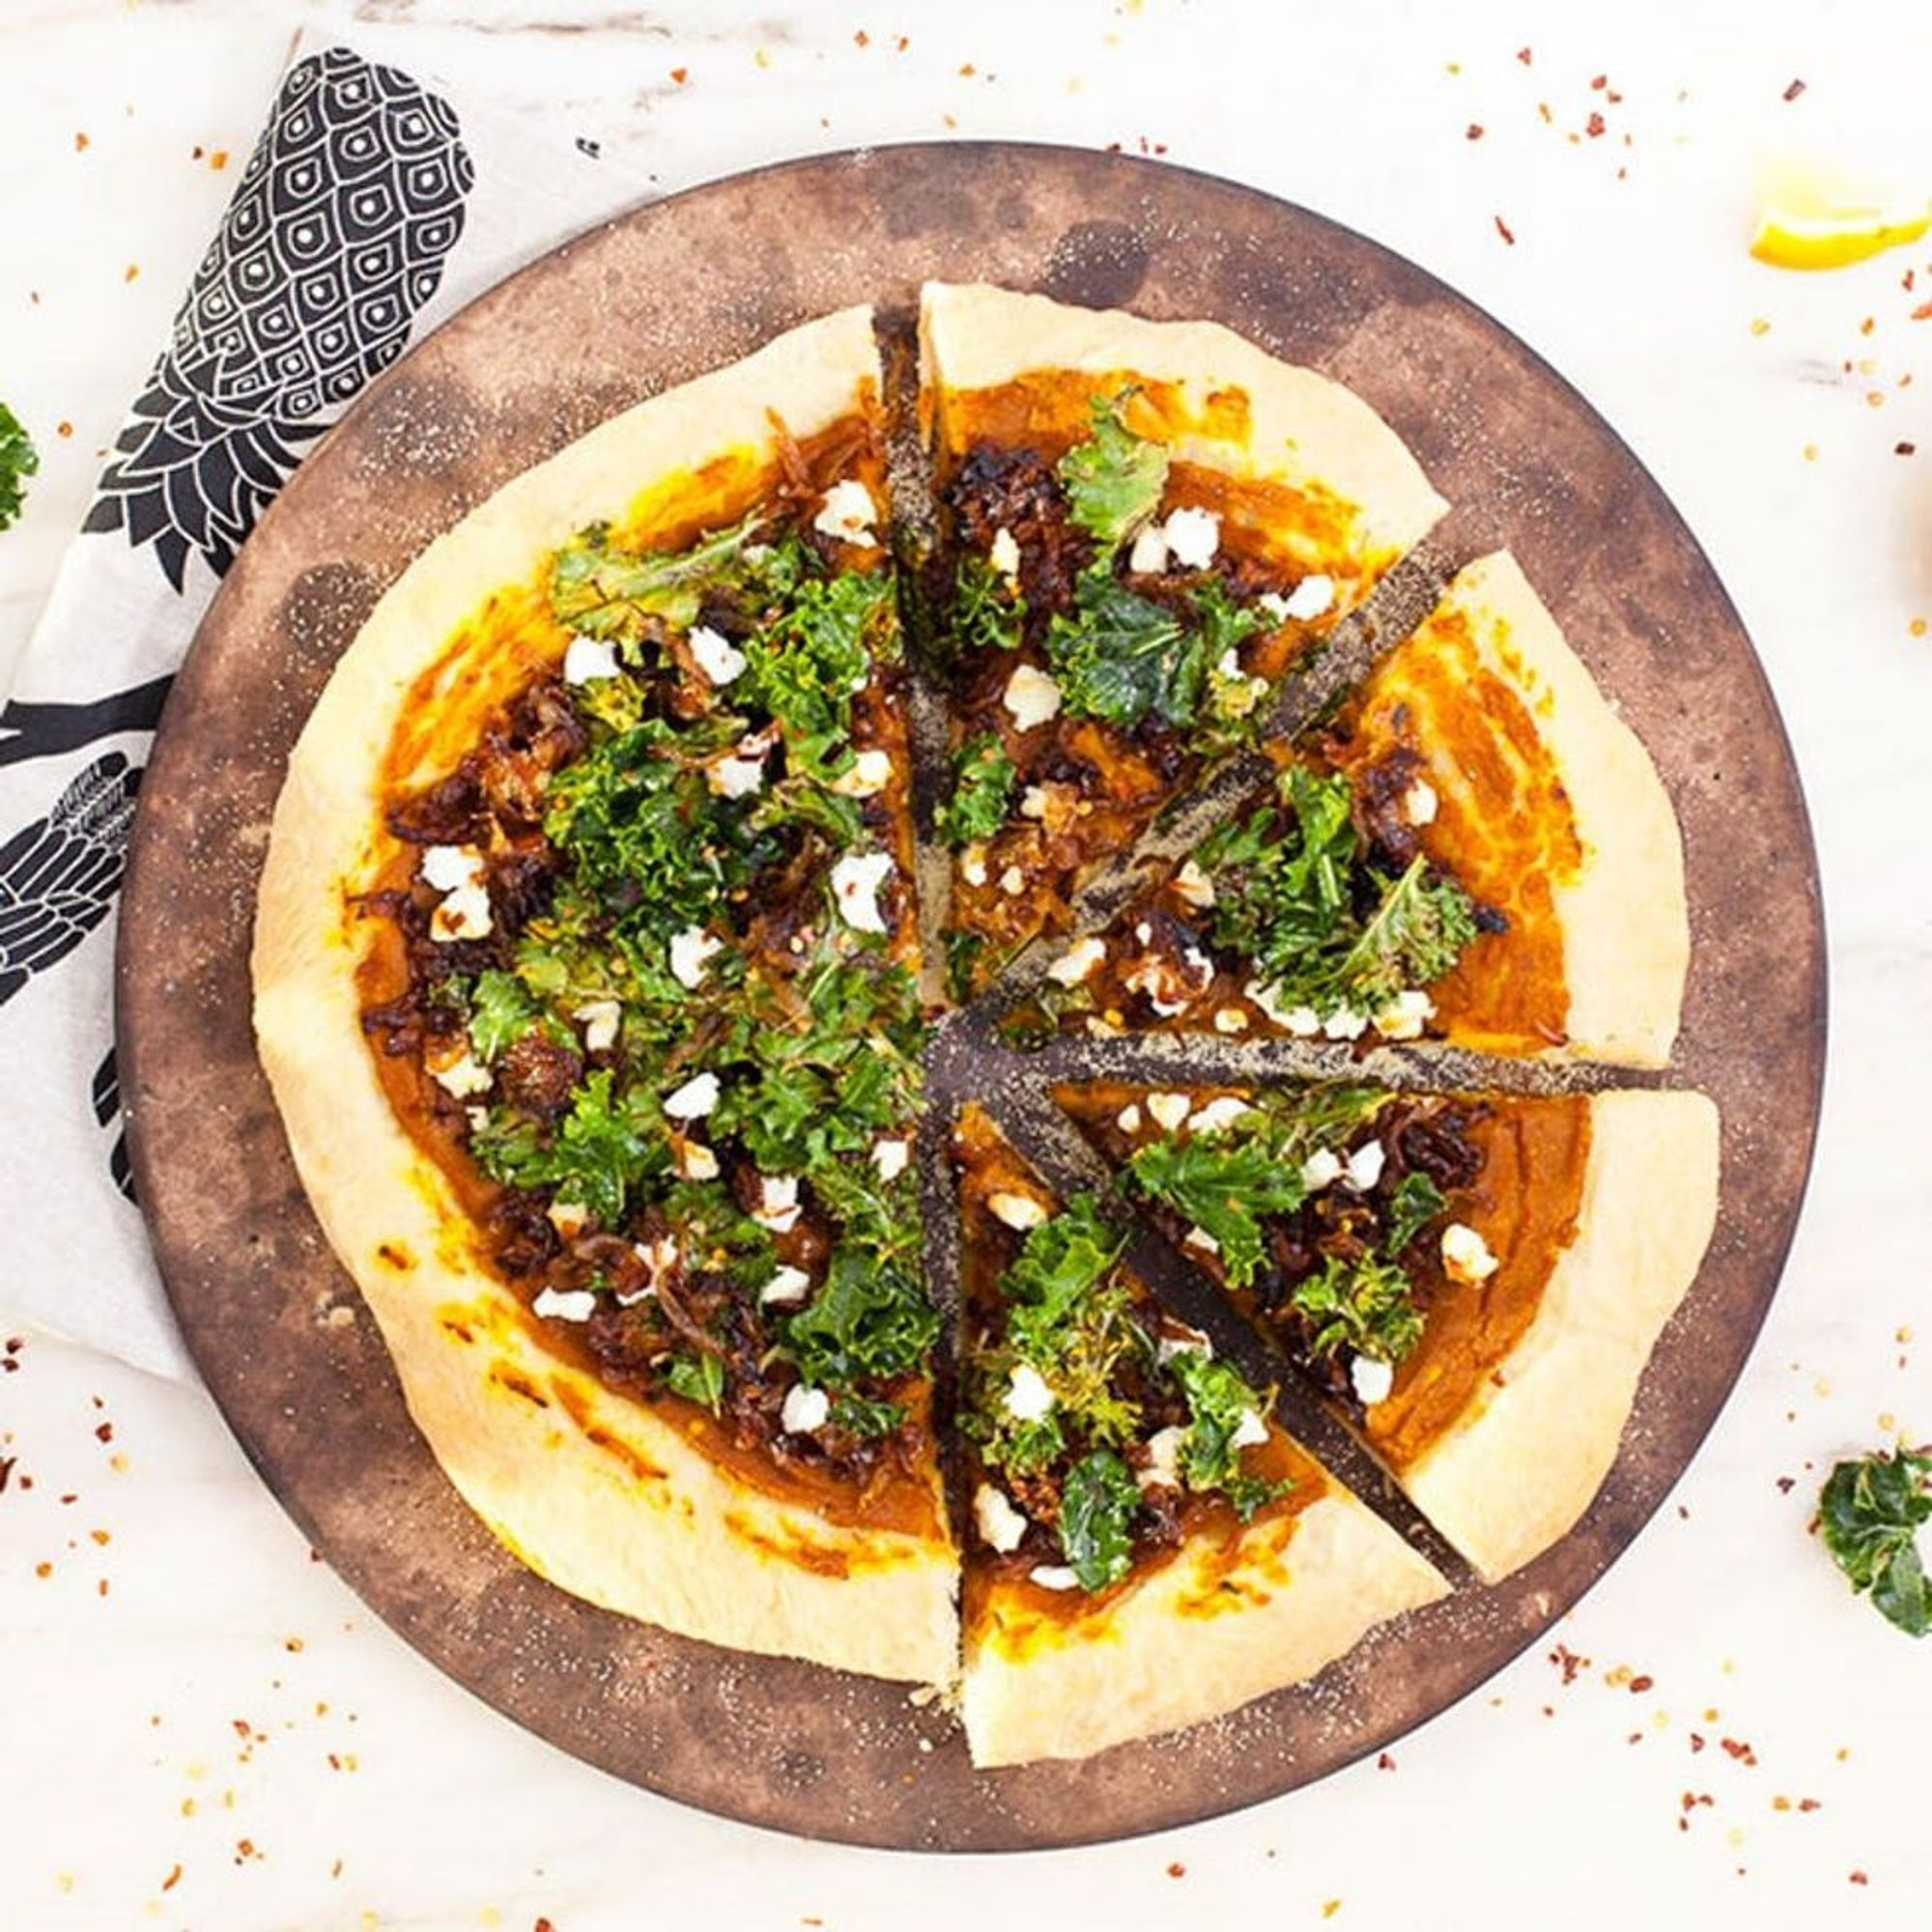 How to Make a Roasted Butternut Squash Pizza in 20 Minutes